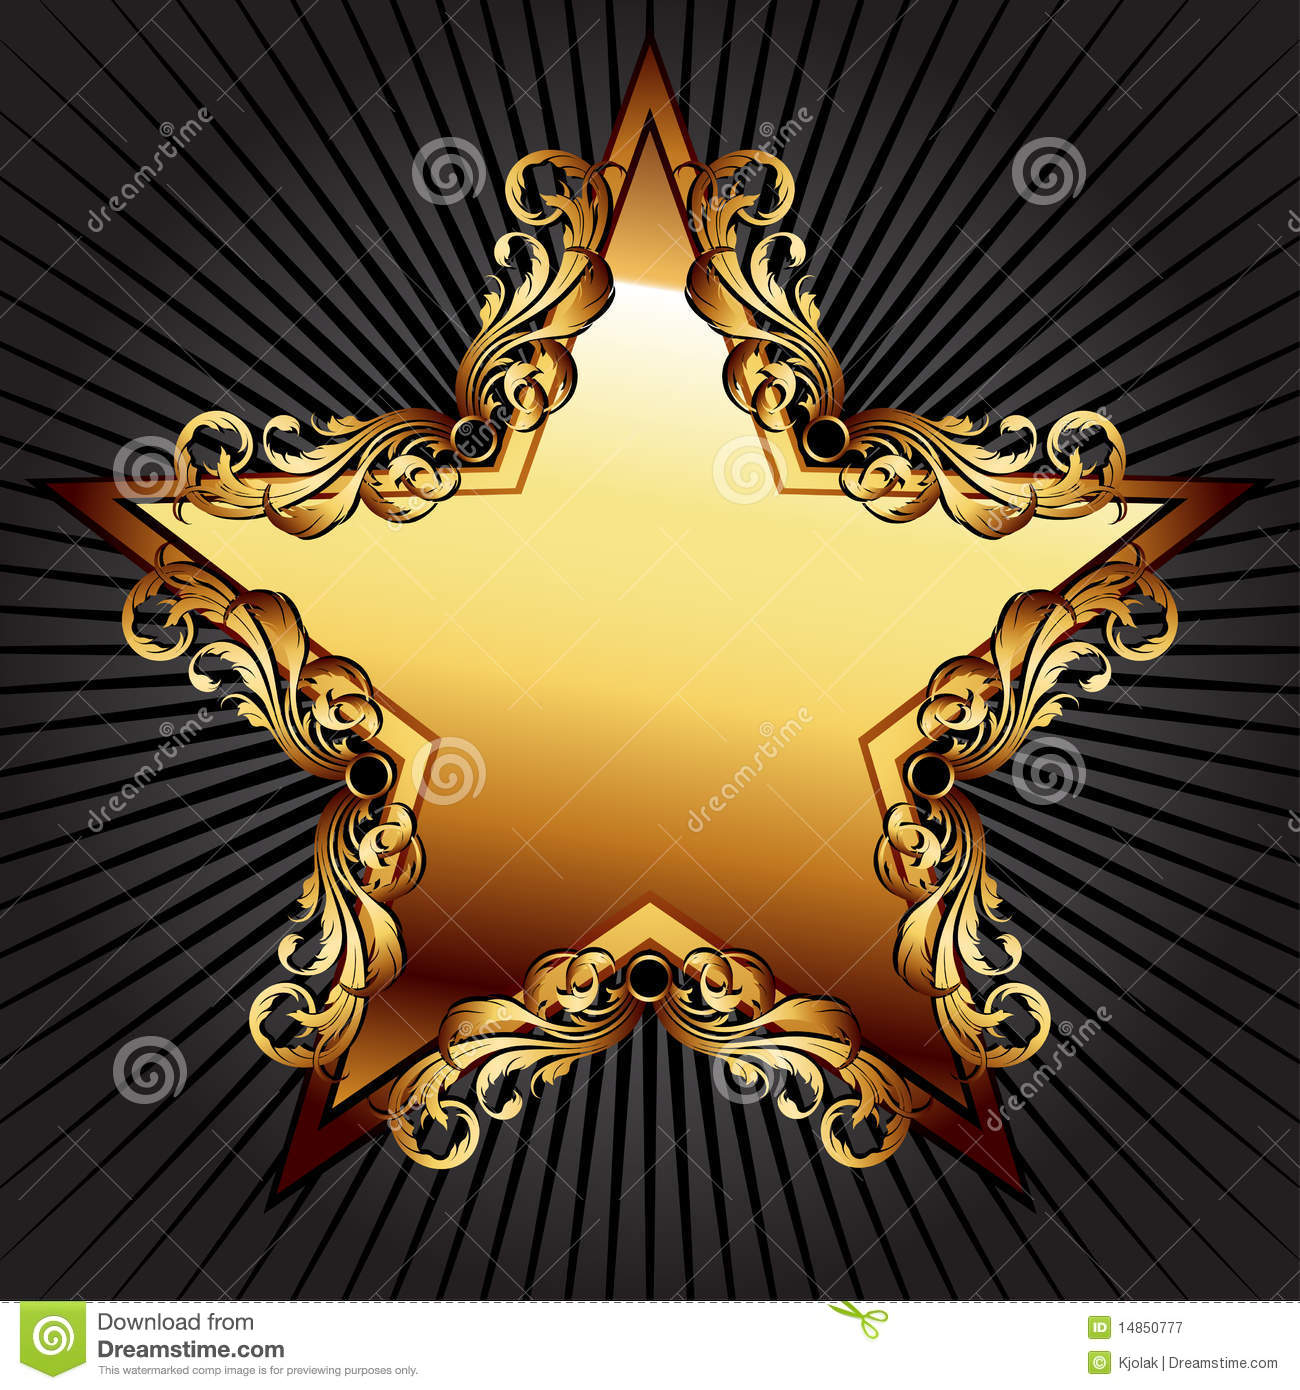 Star with floral elements